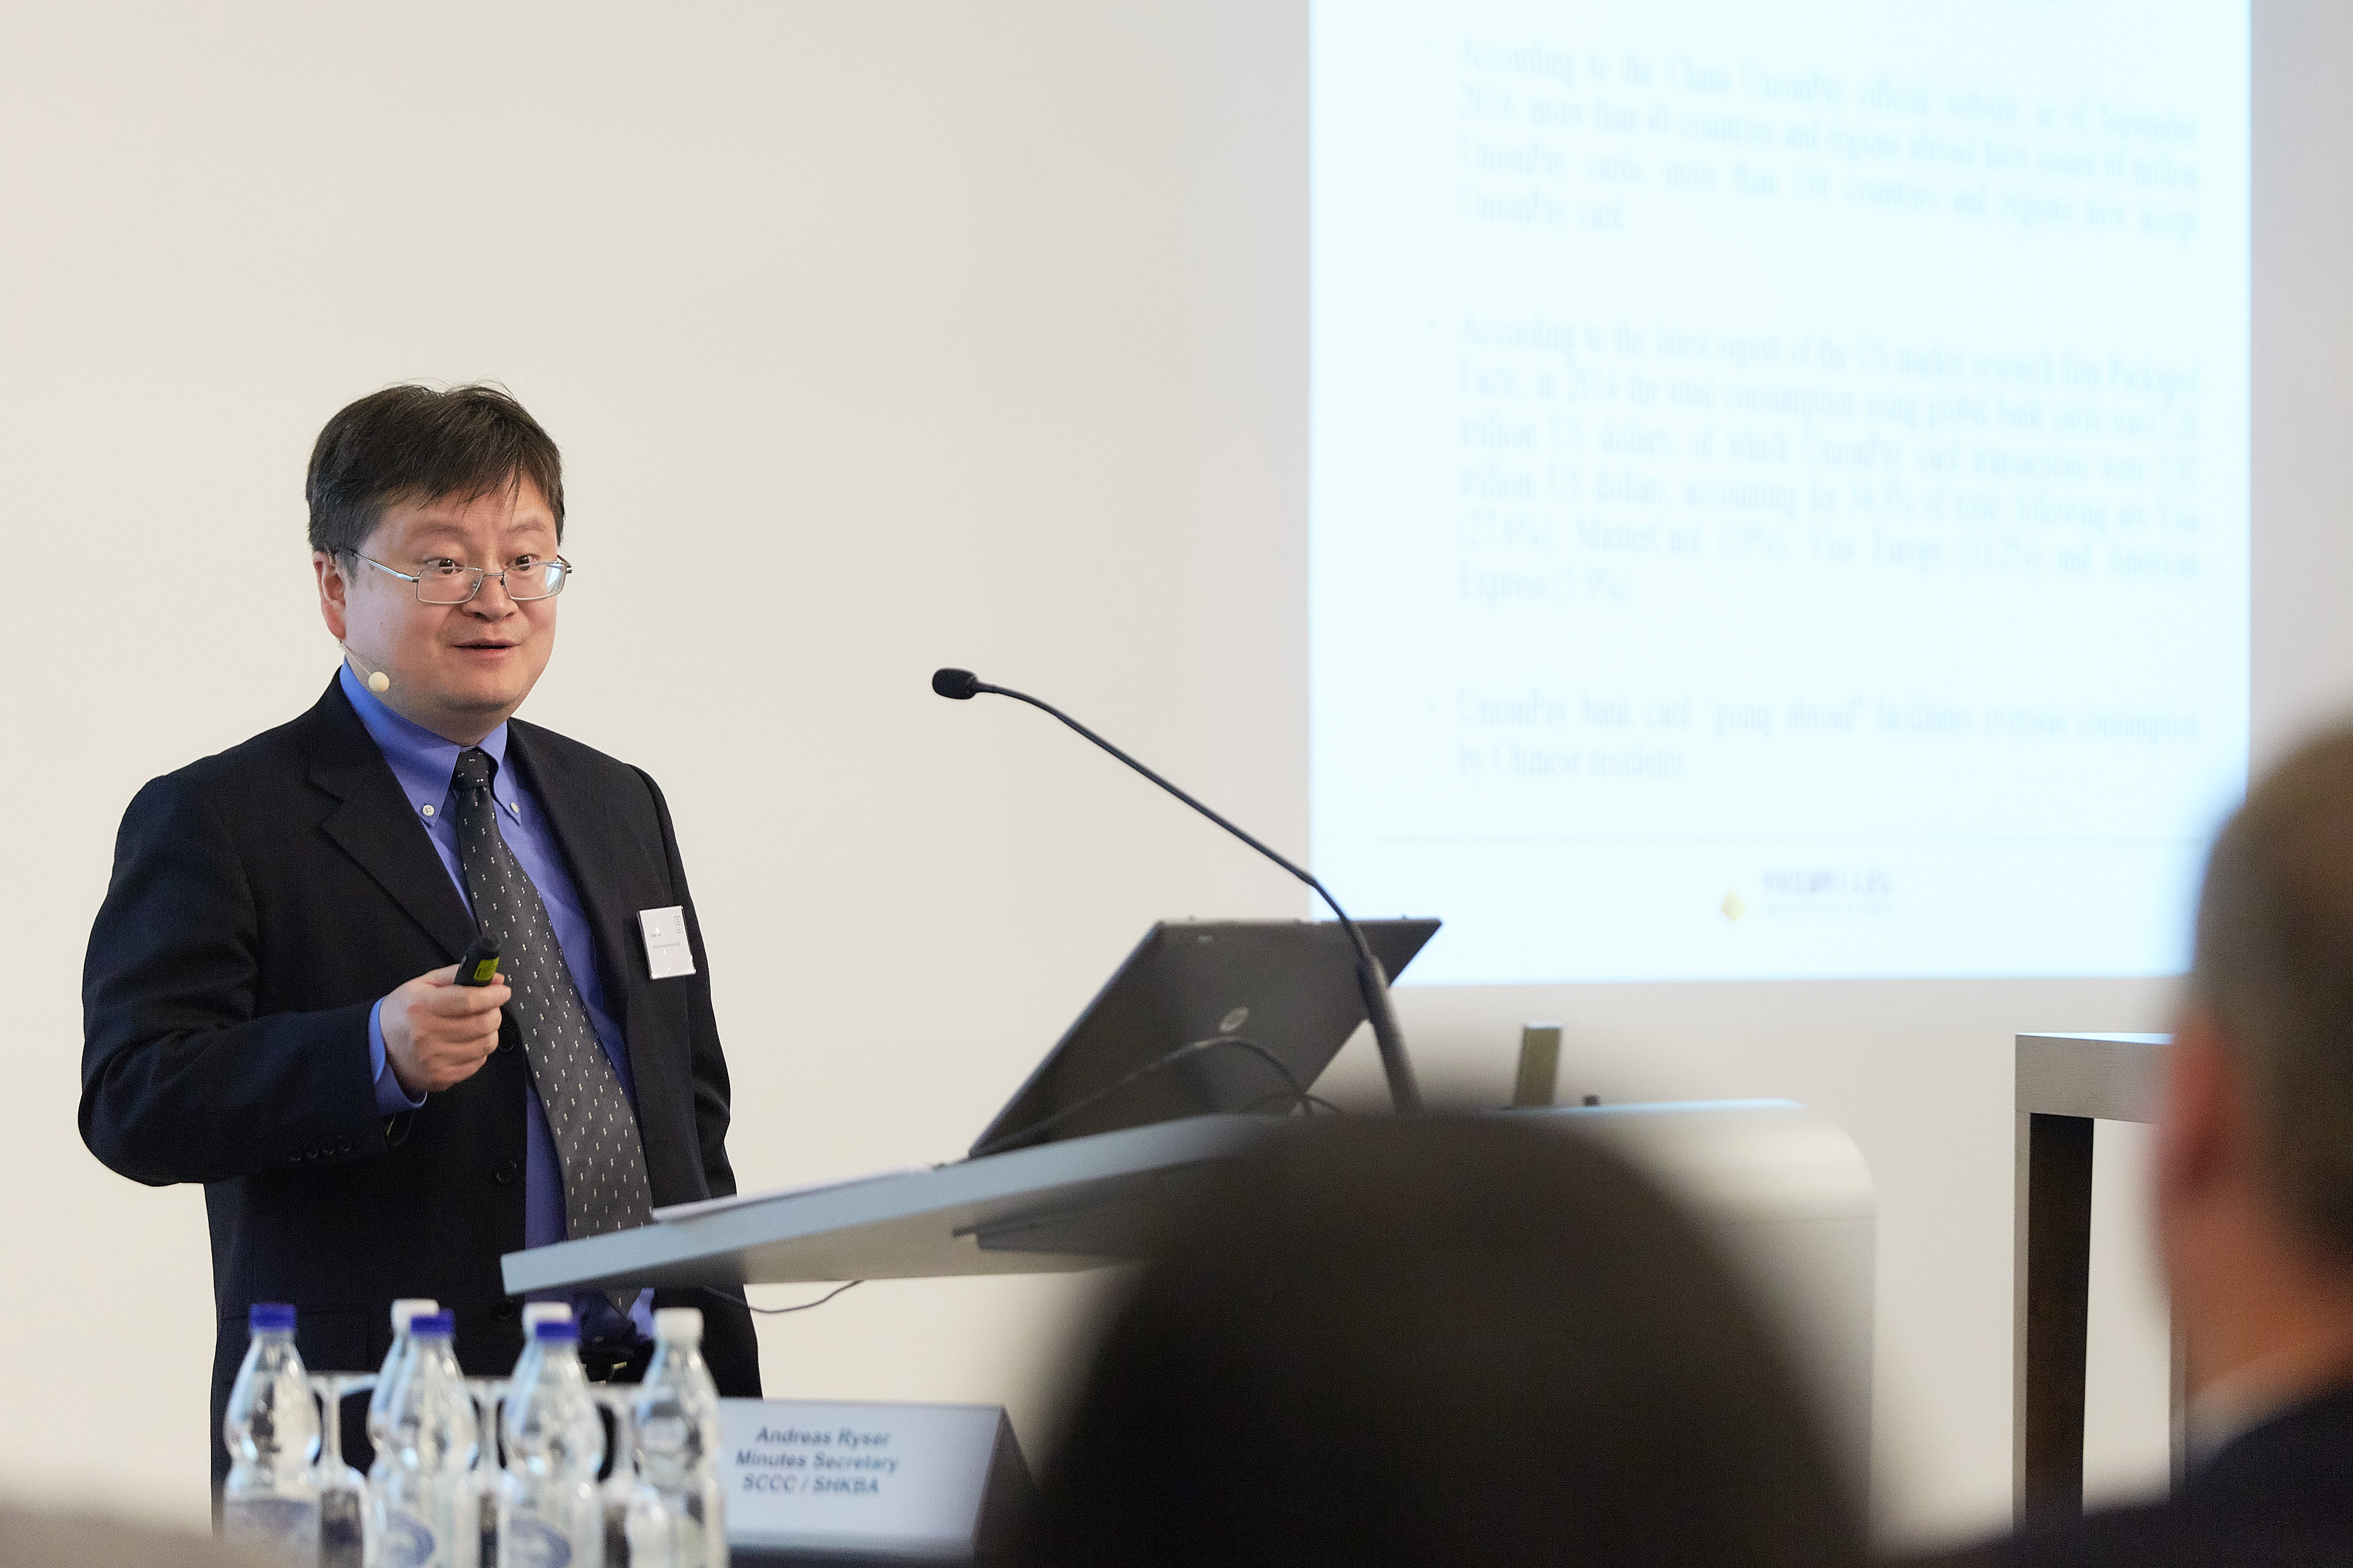 Chinese view on RMB Internationalizationby Mr. Guan Tao, China Finance 40 Forum (CF40), former member of senior management China State Administration of Foreign Exchange  RMB Internationalization – Road to 2020 is an Event of the Swiss-Chinese Chamber of Commerce www.sccc.ch  Foto: © 2017 by partners in GmbH · Stefan Weiss · www.partnersingmbh.ch